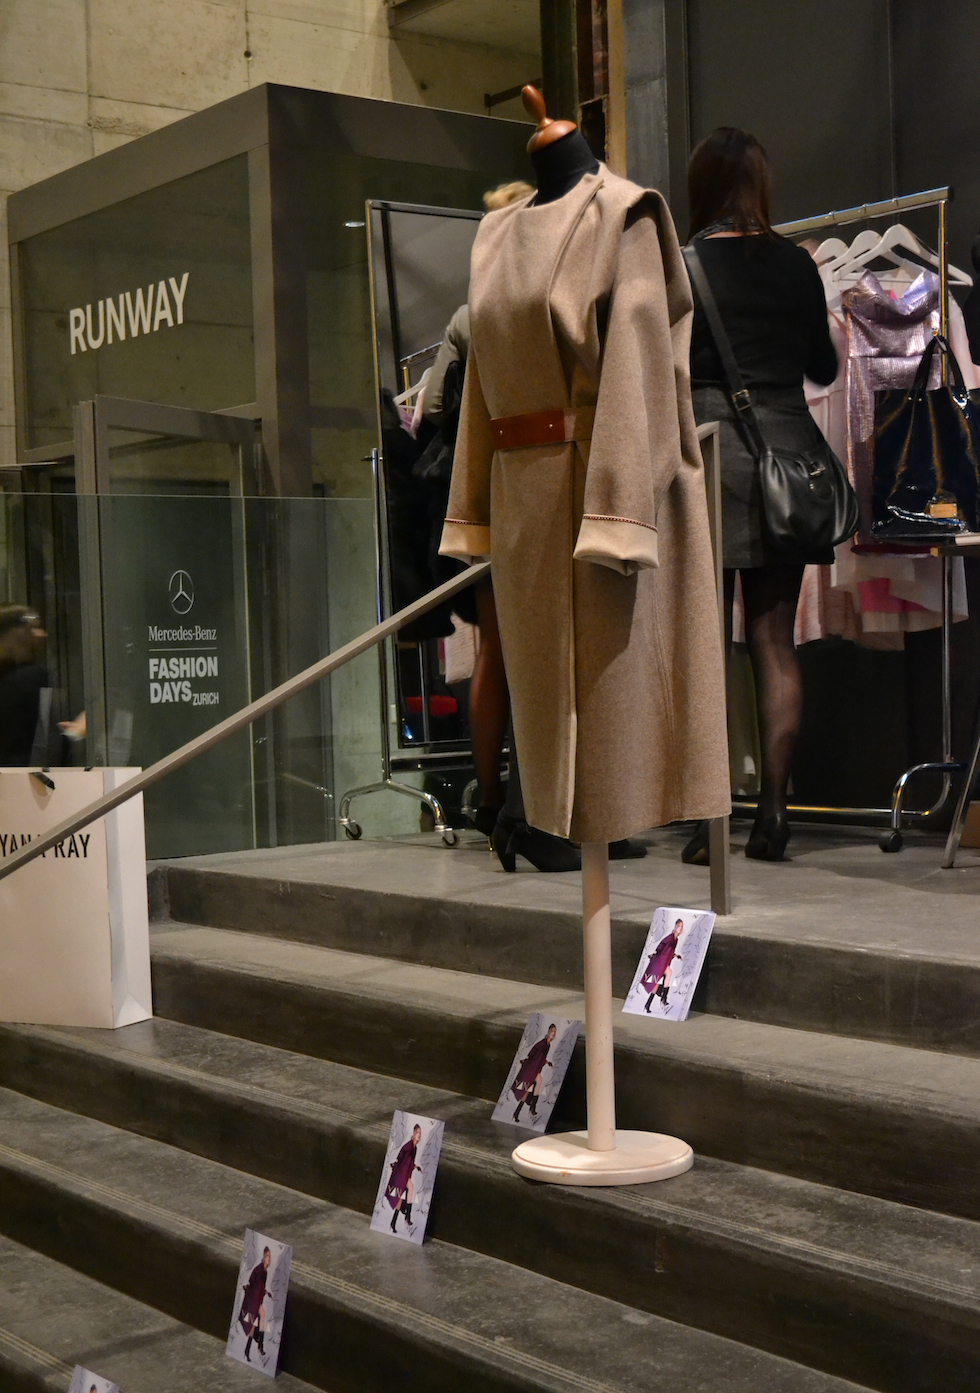 Showroom and Runway Fashion Days Zurich